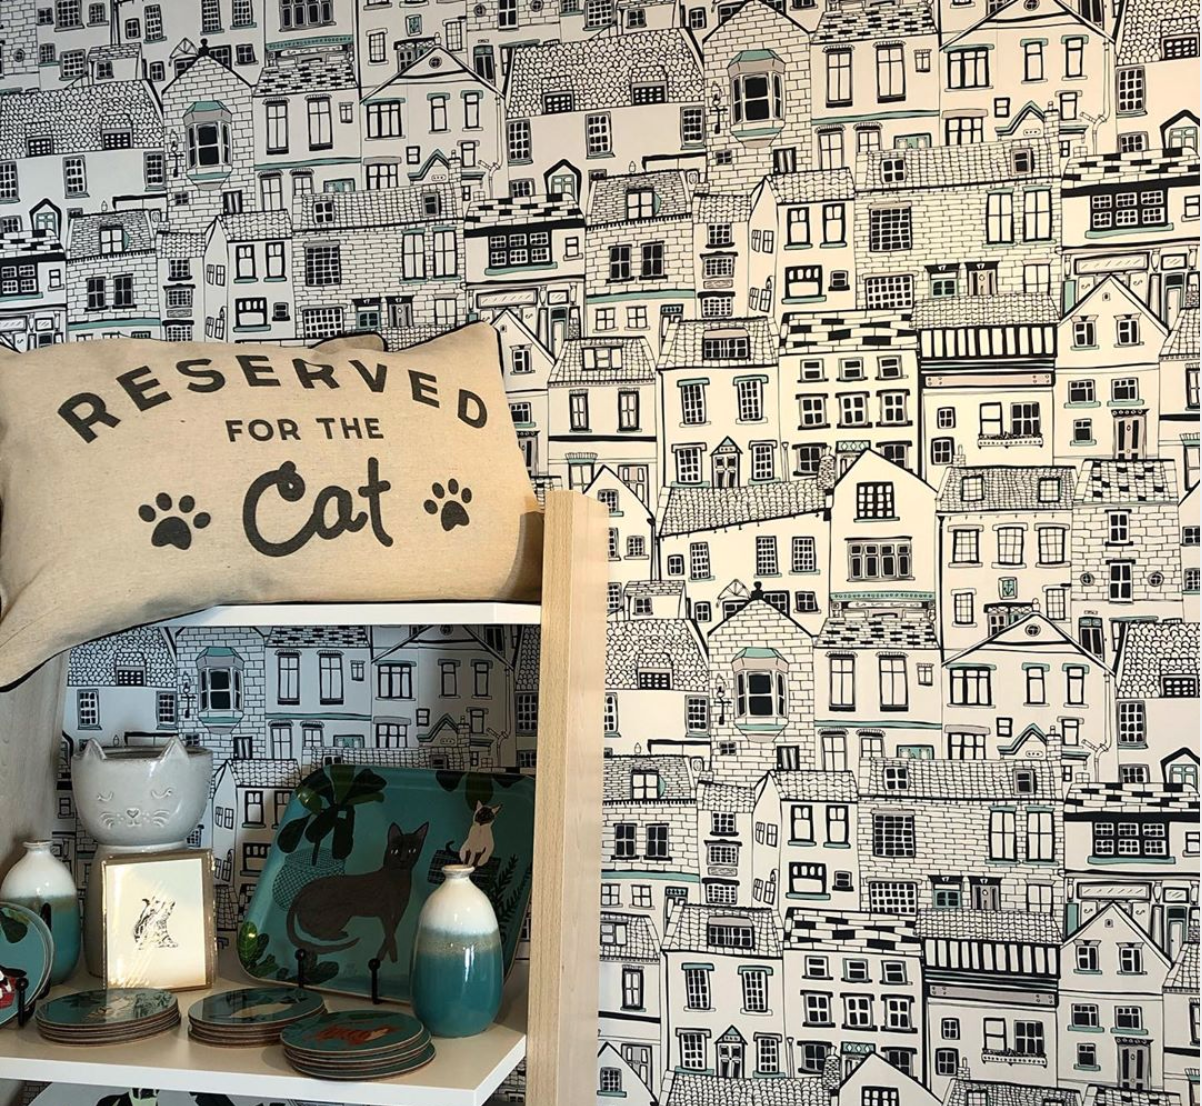 Above: Jess' Coastal Cottages wallpaper adorns one of the walls in the shop.